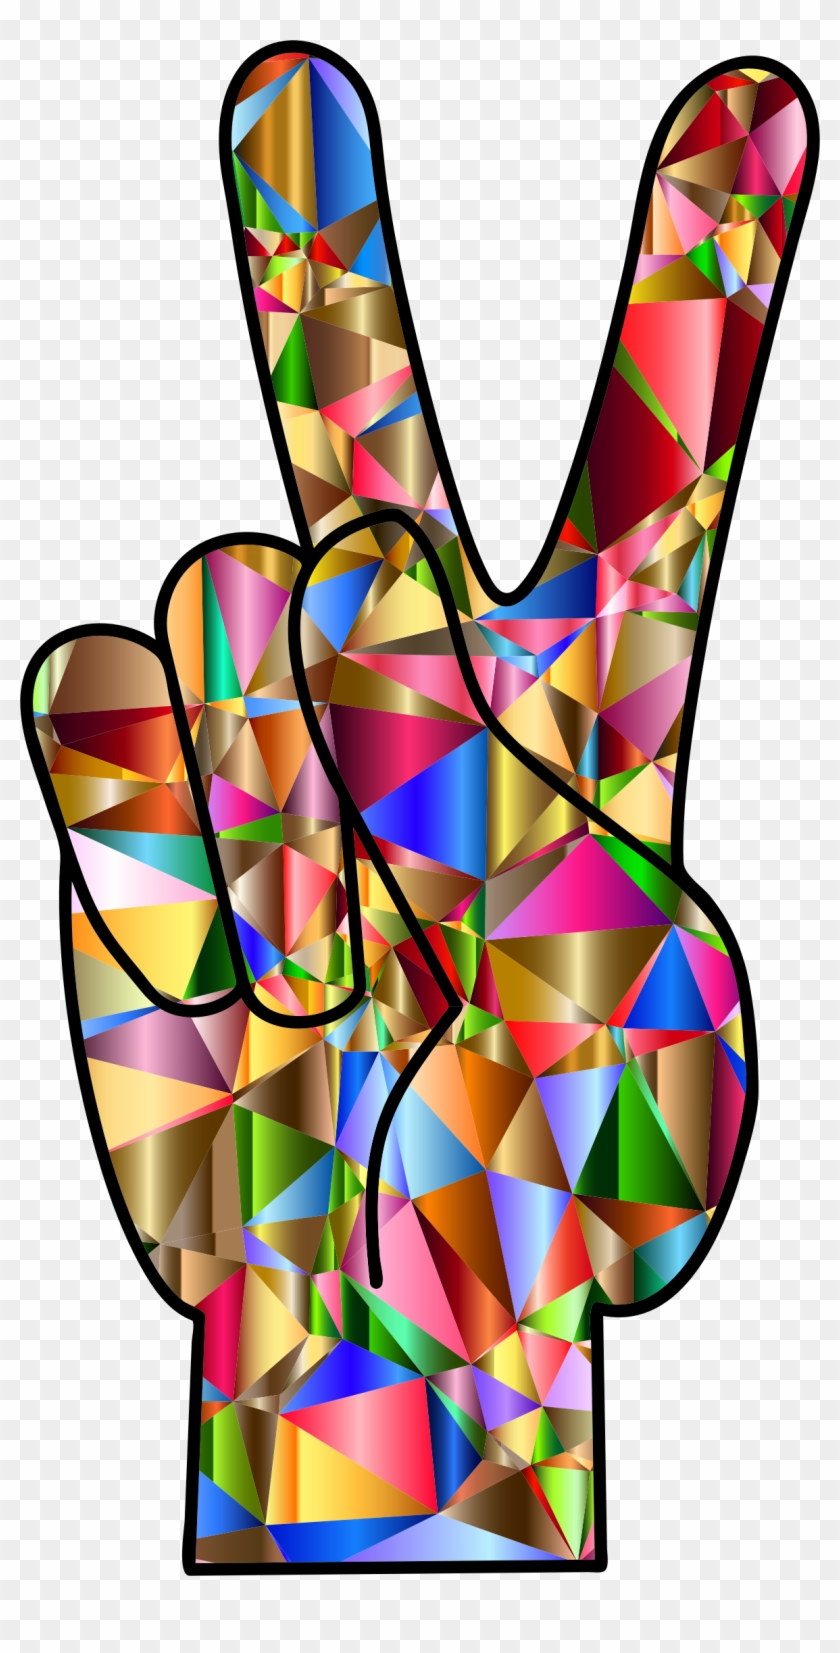 Big Image - Colorful Peace Hand Sign #19090